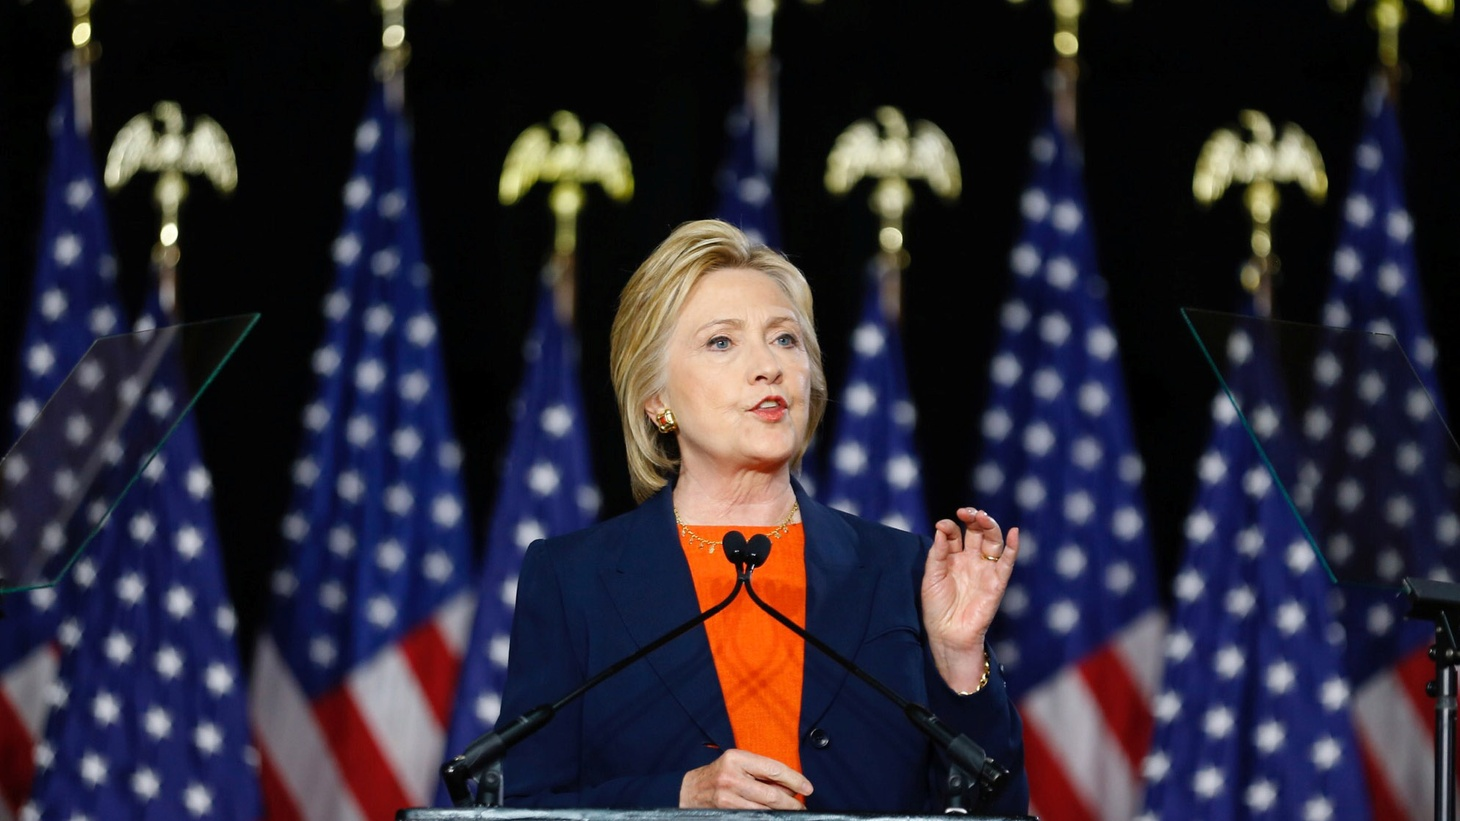 Hillary Clinton made a forceful case in a foreign policy speech Thursday that Donald Trump is more than unqualified to be Commander in Chief, calling his foreign policy platform 'dangerously incoherent'.